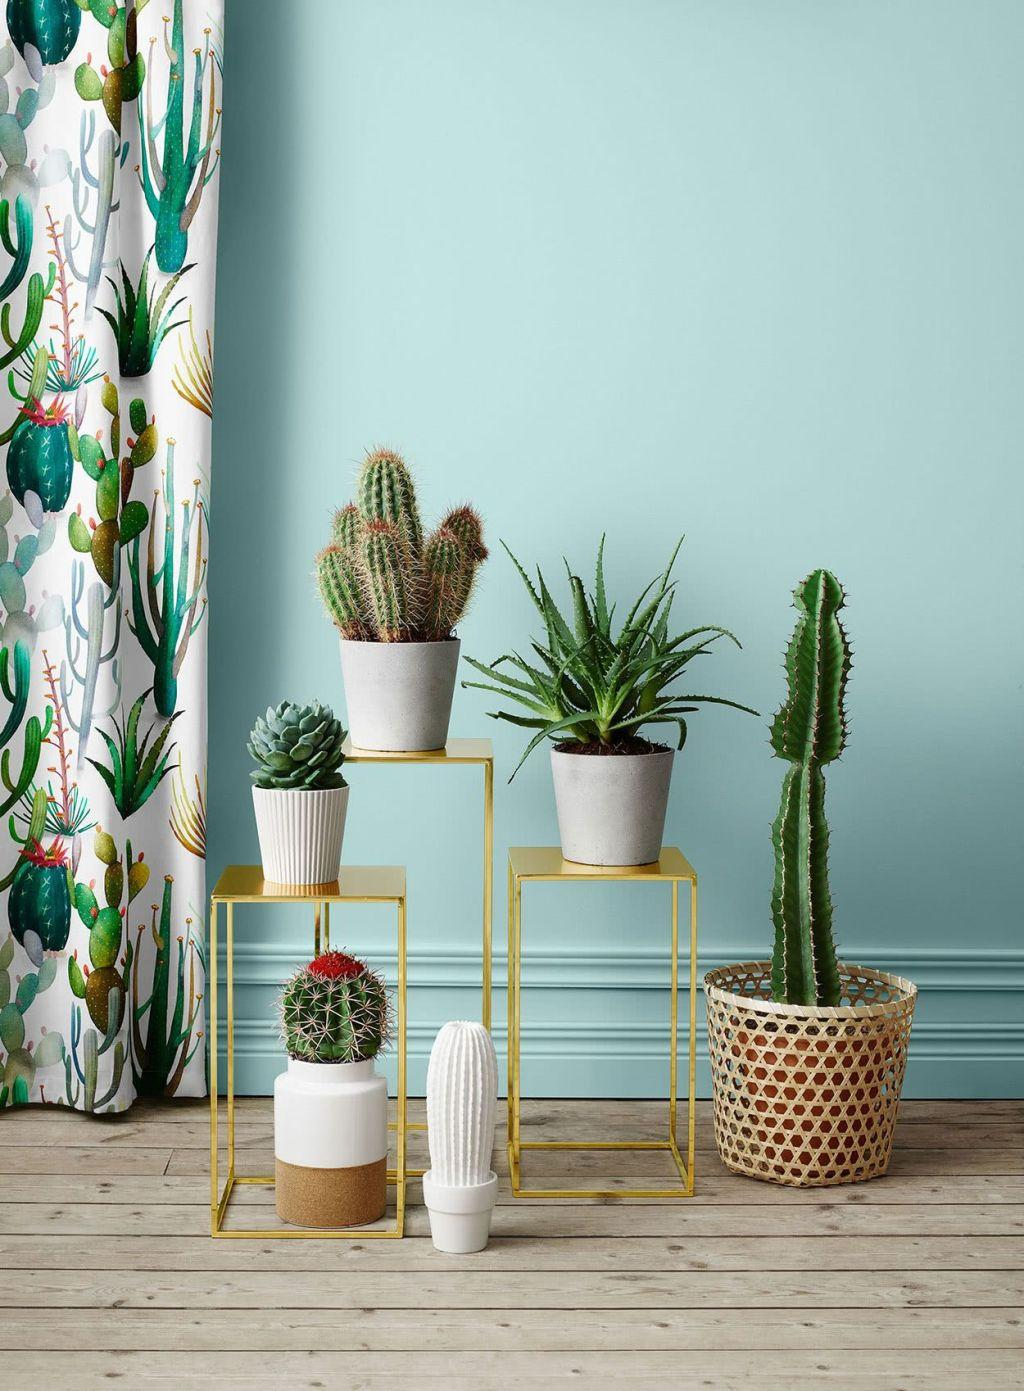 Cacti at home: 60 inspirations to decorate with the 30 plant